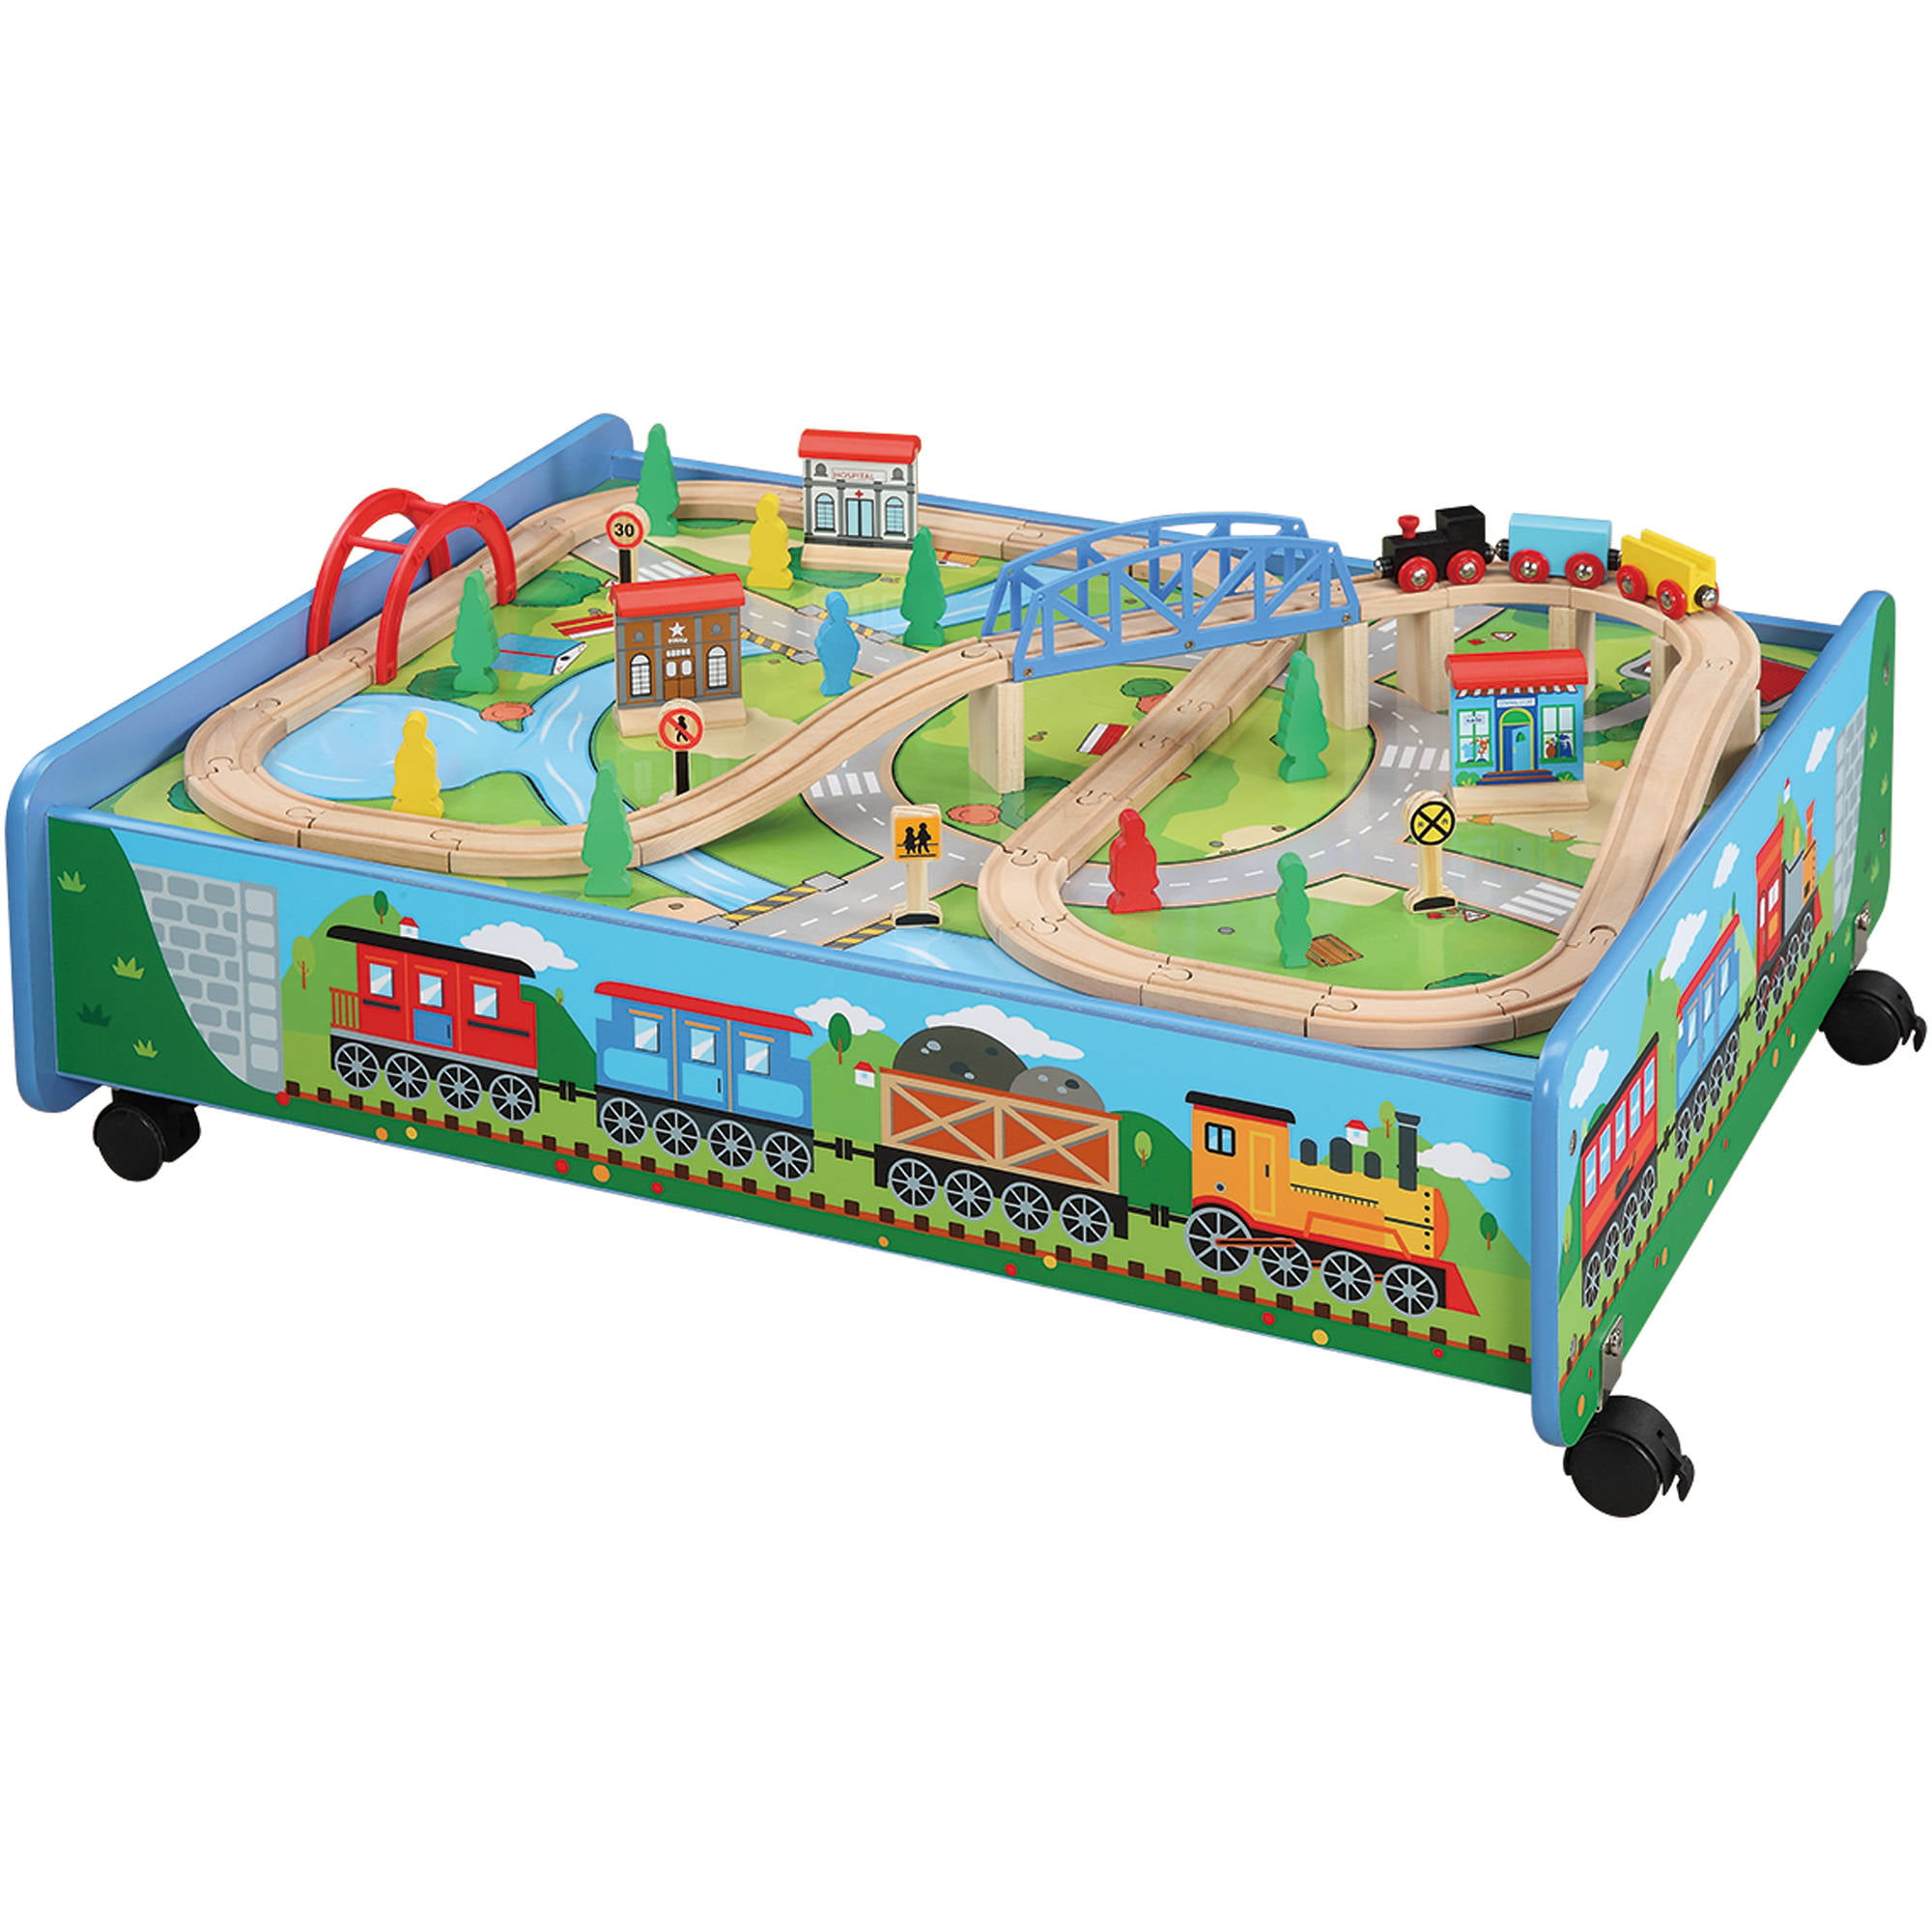 62-Piece Wooden Train Set with Train Table Trundle, BRIO and Thomas and Friends Compatible by Maxim Enterprise Inc.